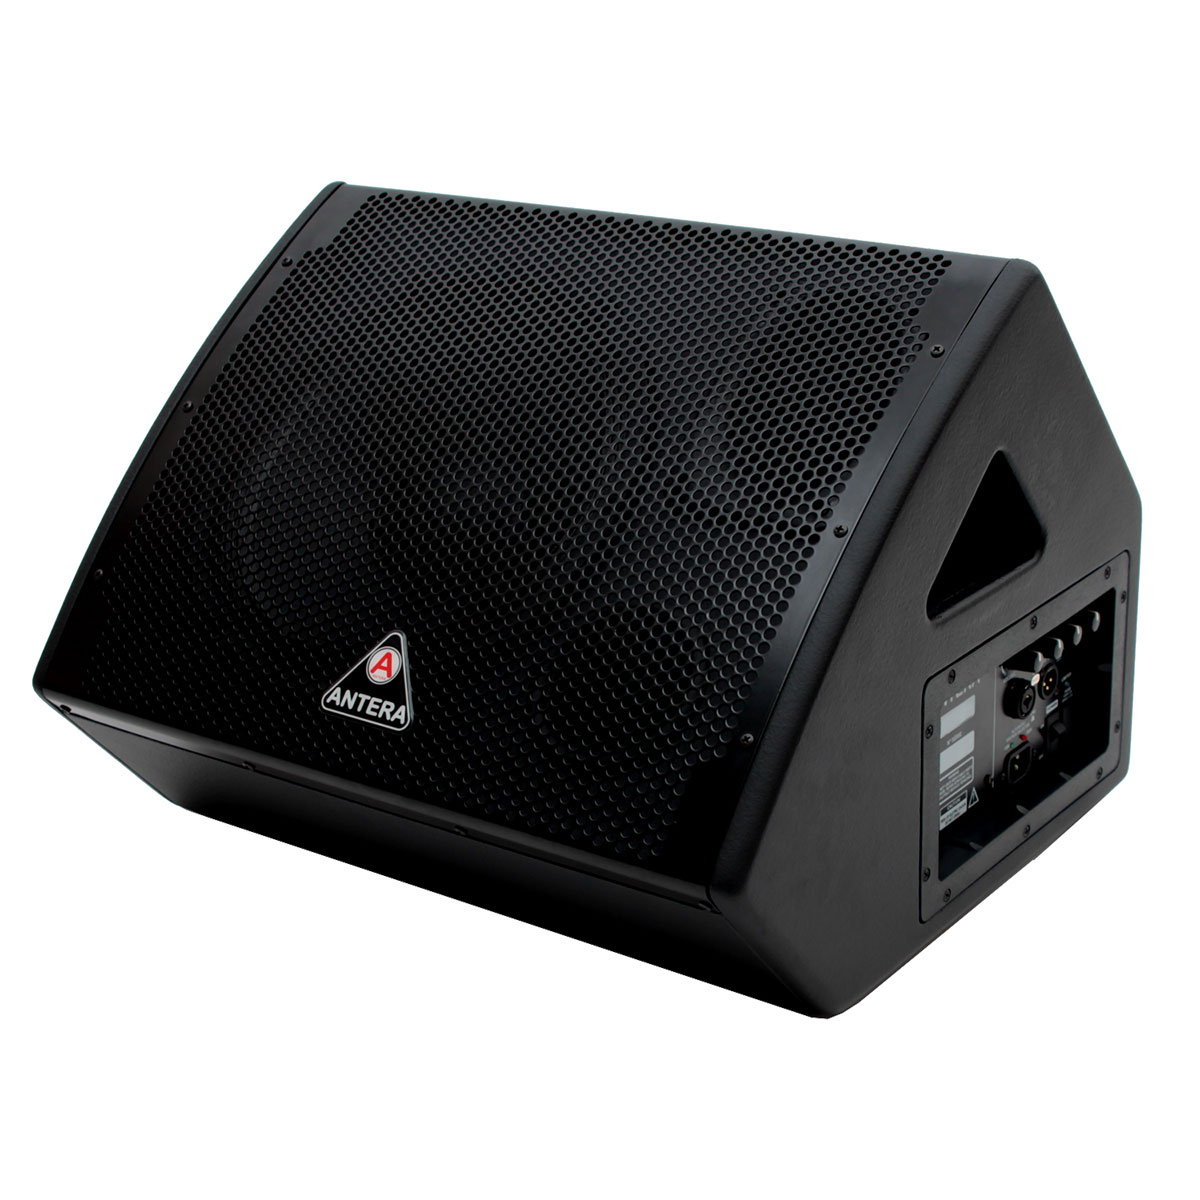 MR10A - Monitor Ativo 150W Preto MR 10 A - Antera